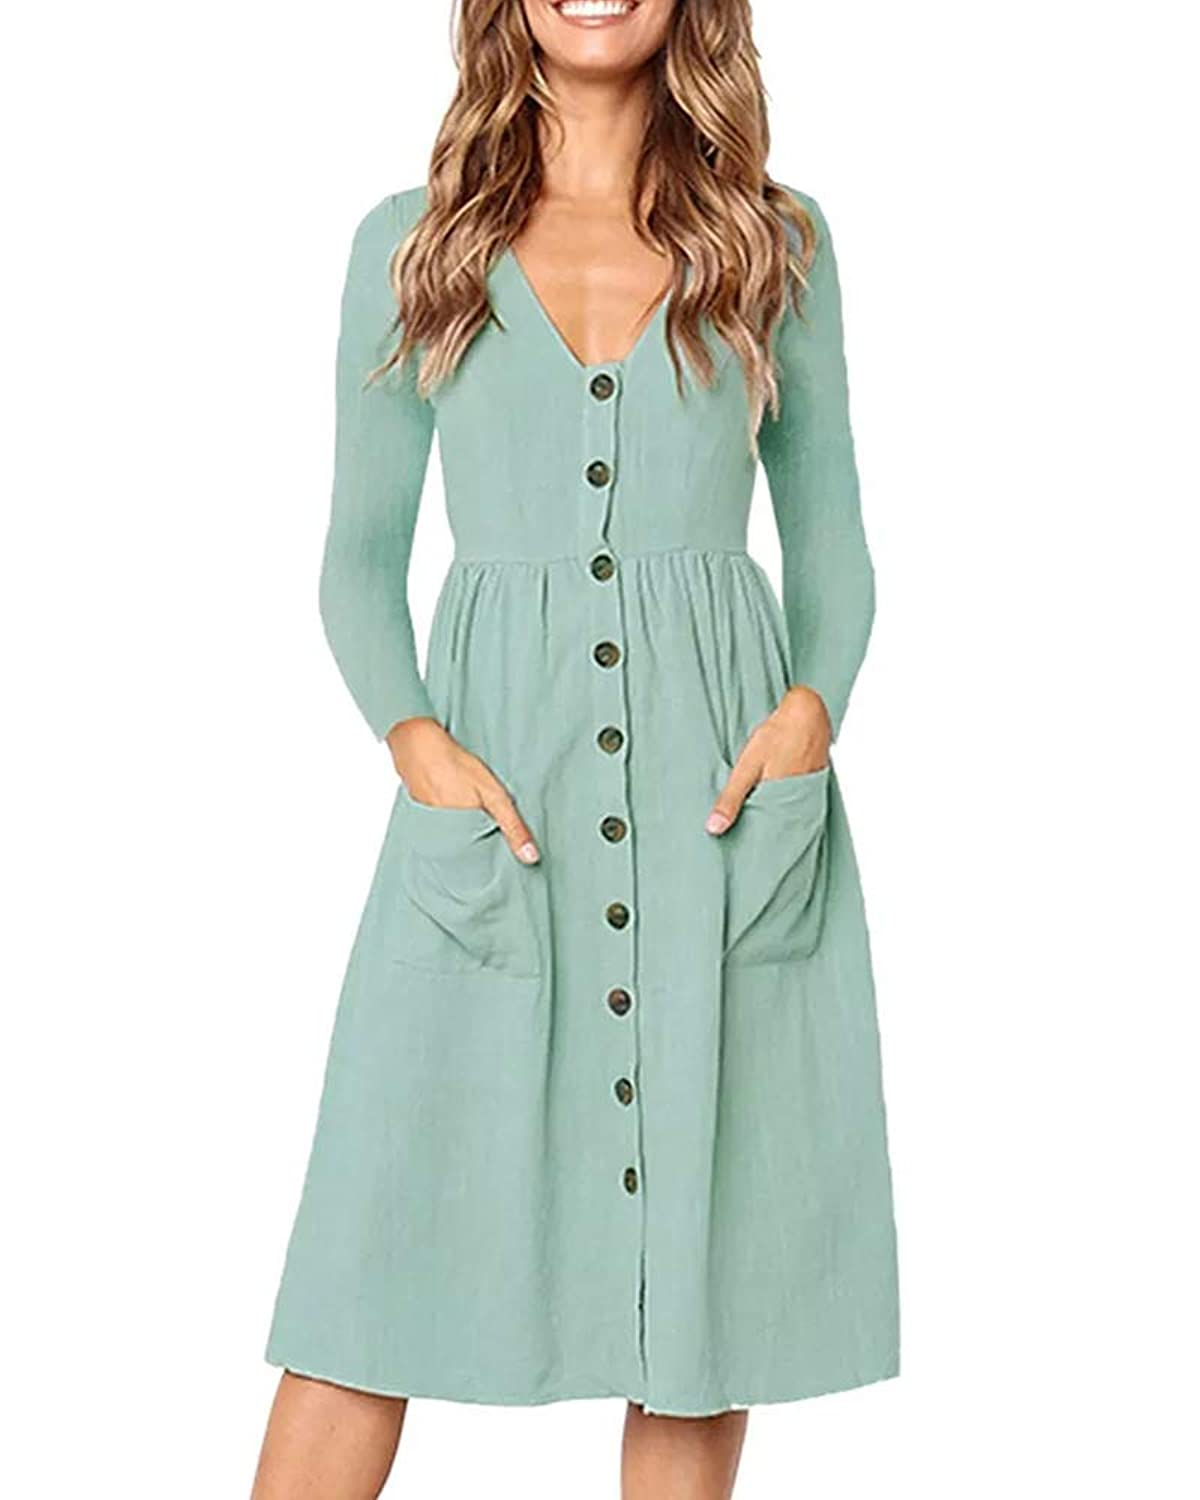 87673a9f735 Dellytop Women s V Neck Long Sleeve Button Down Dress Casual Pocketed A  Line Midi Dresses Super lightweight and easy to wear